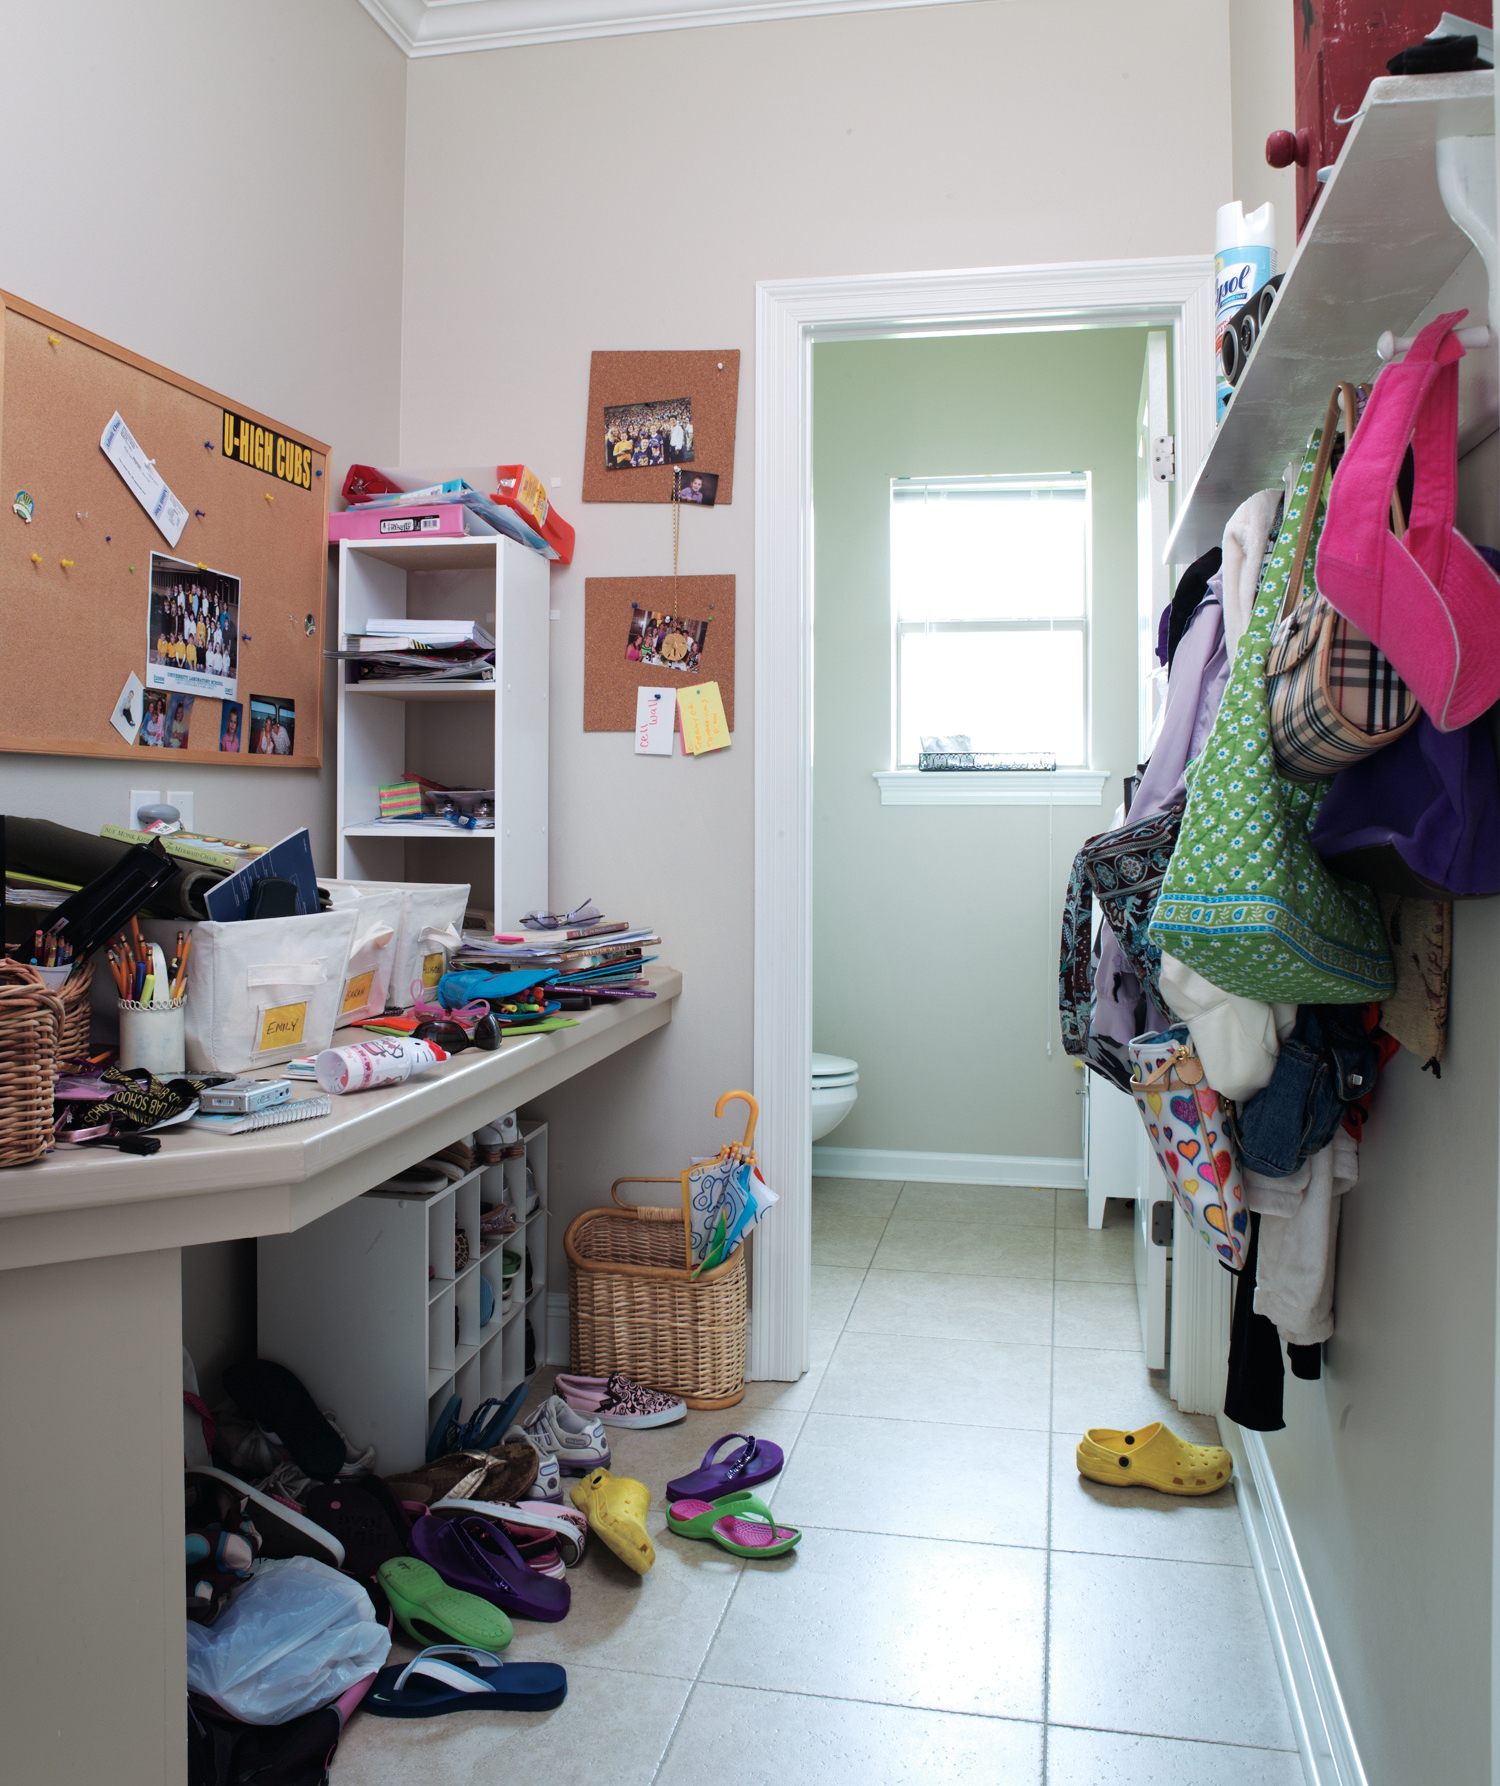 A cluttered mudroom